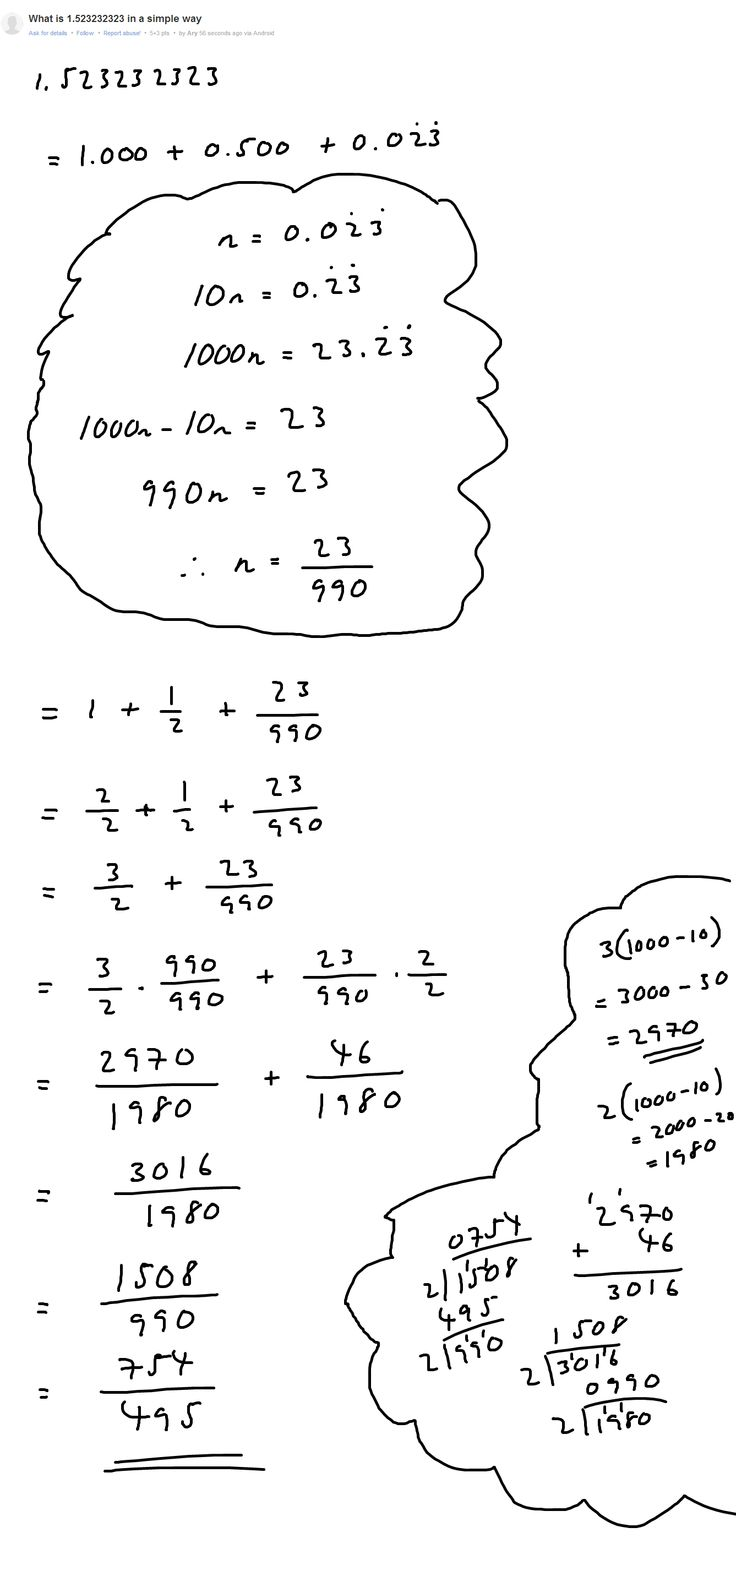 worksheet Repeating Decimals Worksheet 1000 ideas about repeating decimal on pinterest algebra real another problem